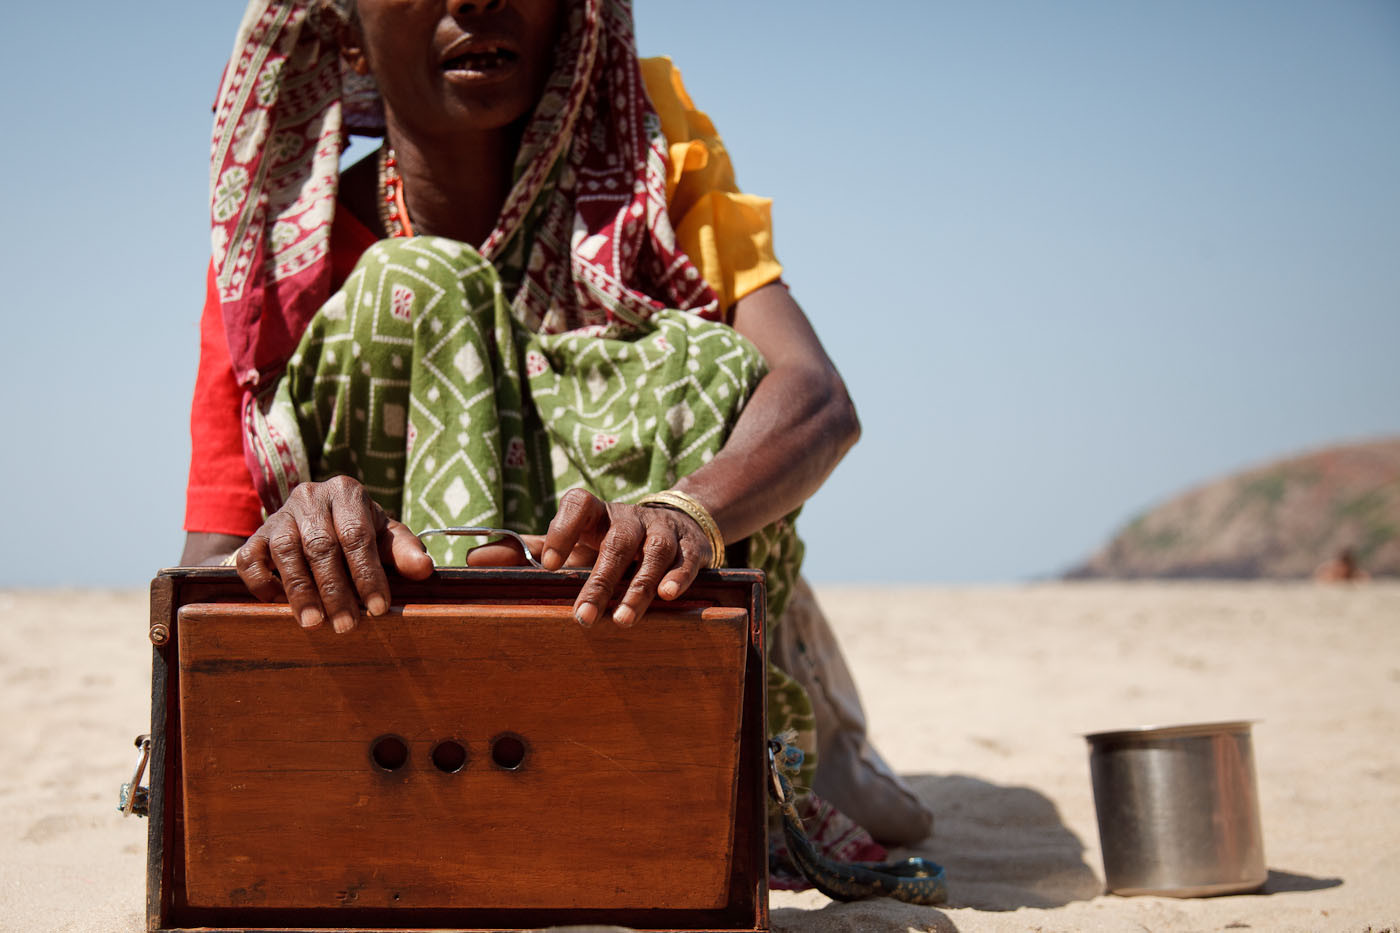 Indian woman singing on the beach for money in Gokarn, India